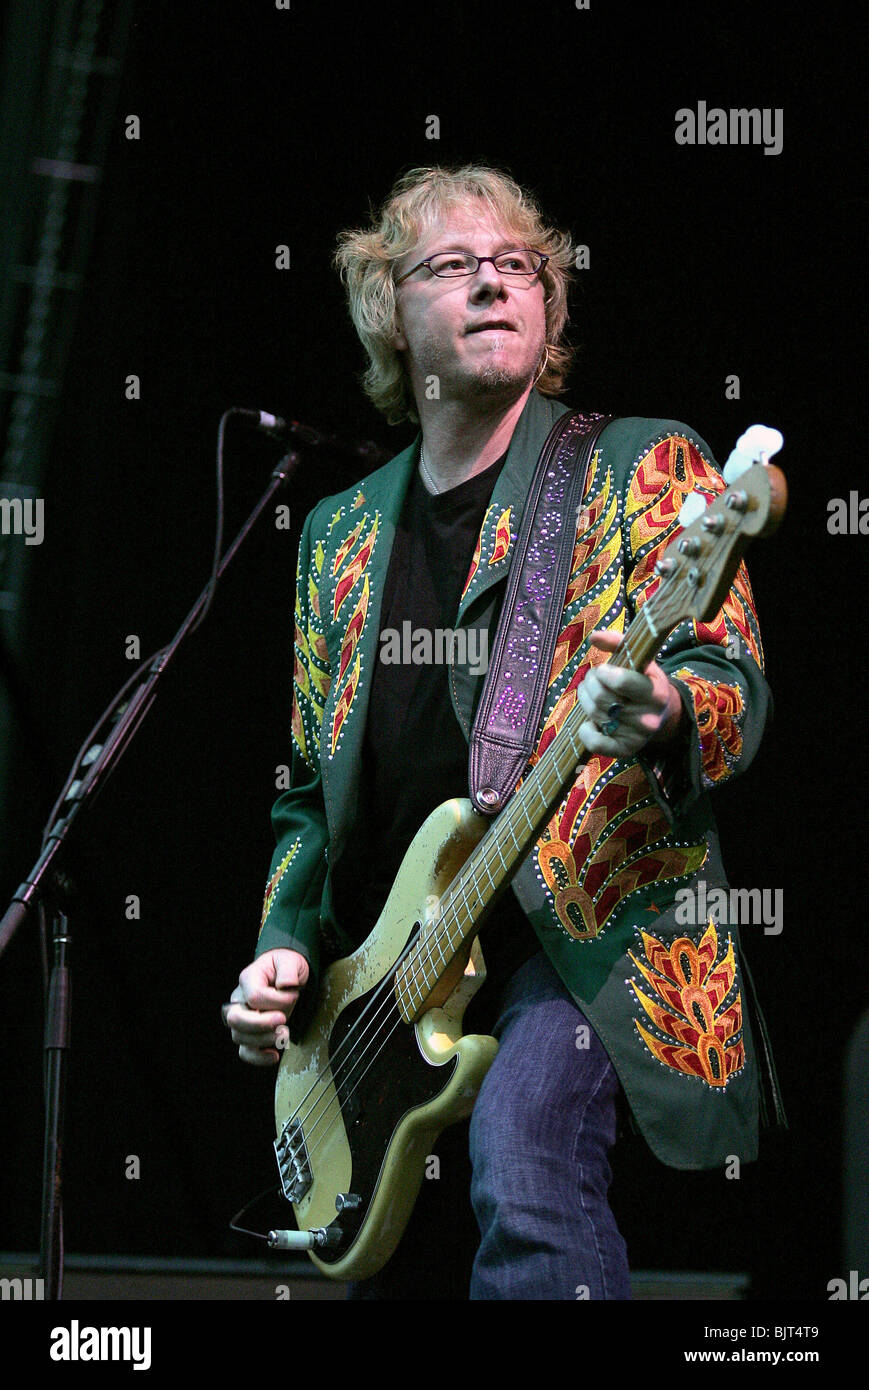 R M Richards Misses Estelle S Dressy Dresses In: MIKE MILLS R.E.M CONCERT HULL KC STADIUM 05 July 2005